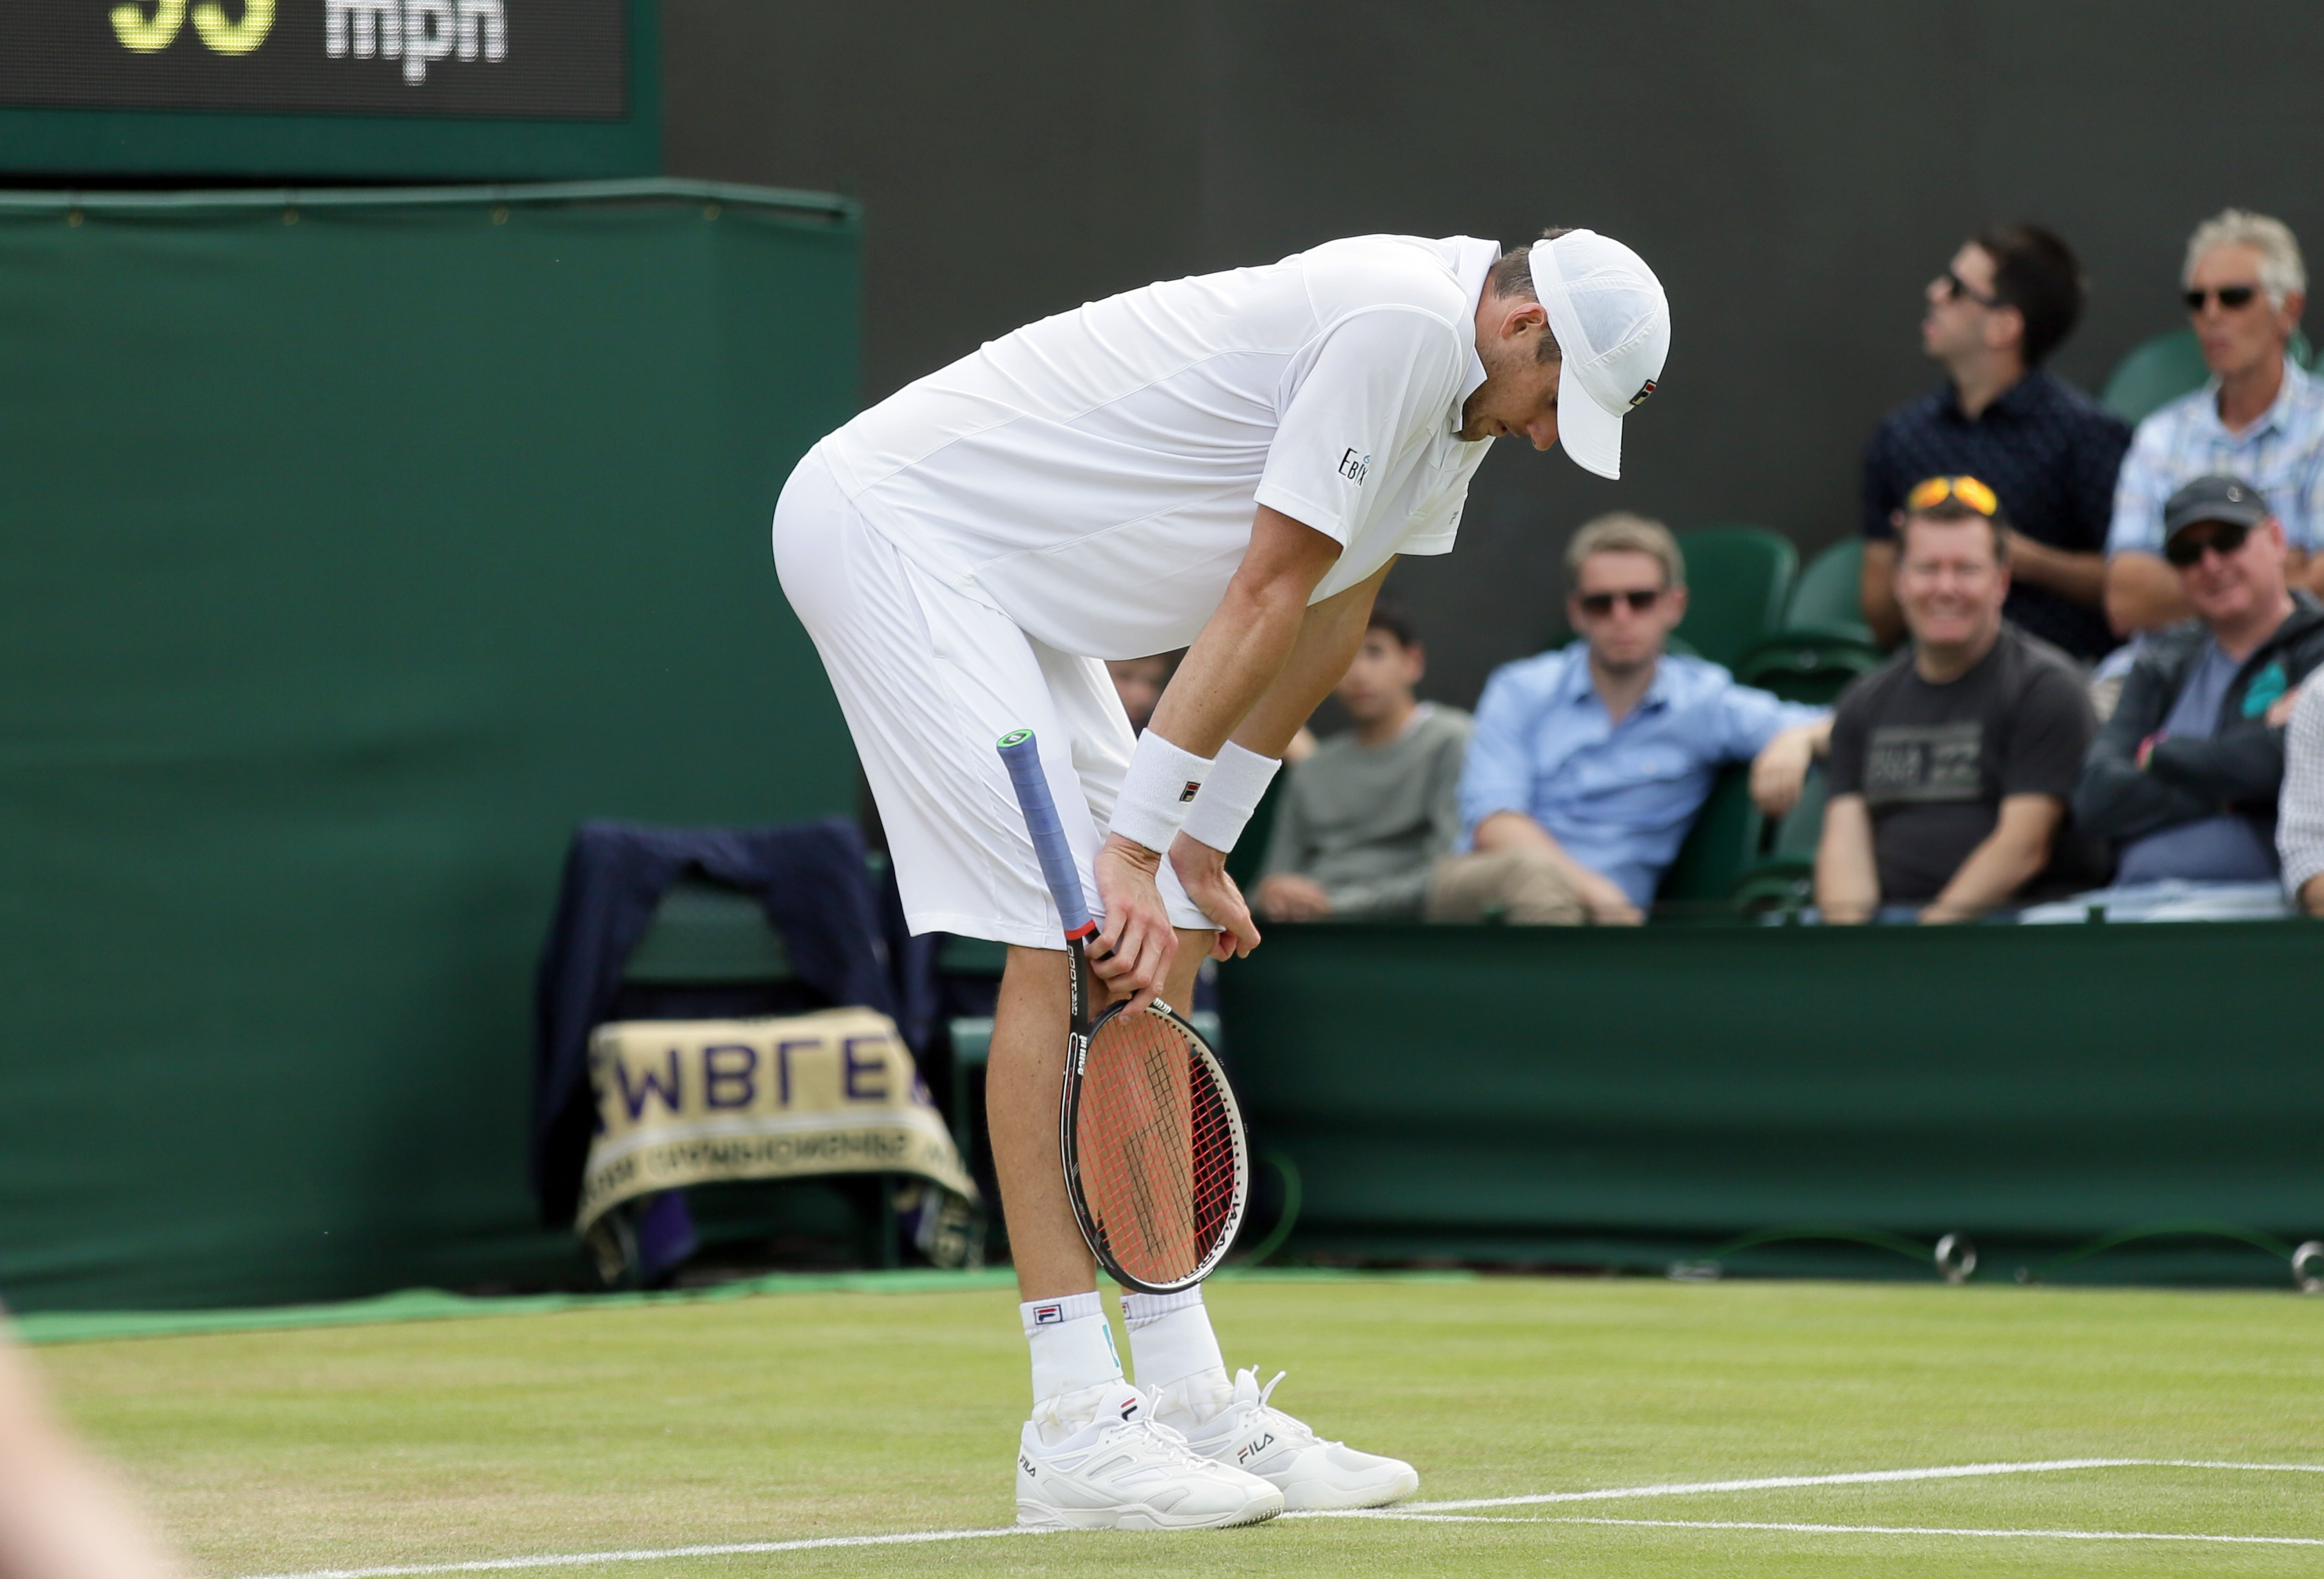 John Isner of the U.S reacts during his men's singles match against Jo-Wilfried Tsonga of France on day seven of the Wimbledon Tennis Championships in London, Sunday, July 3, 2016. (AP Photo/Tim Ireland)